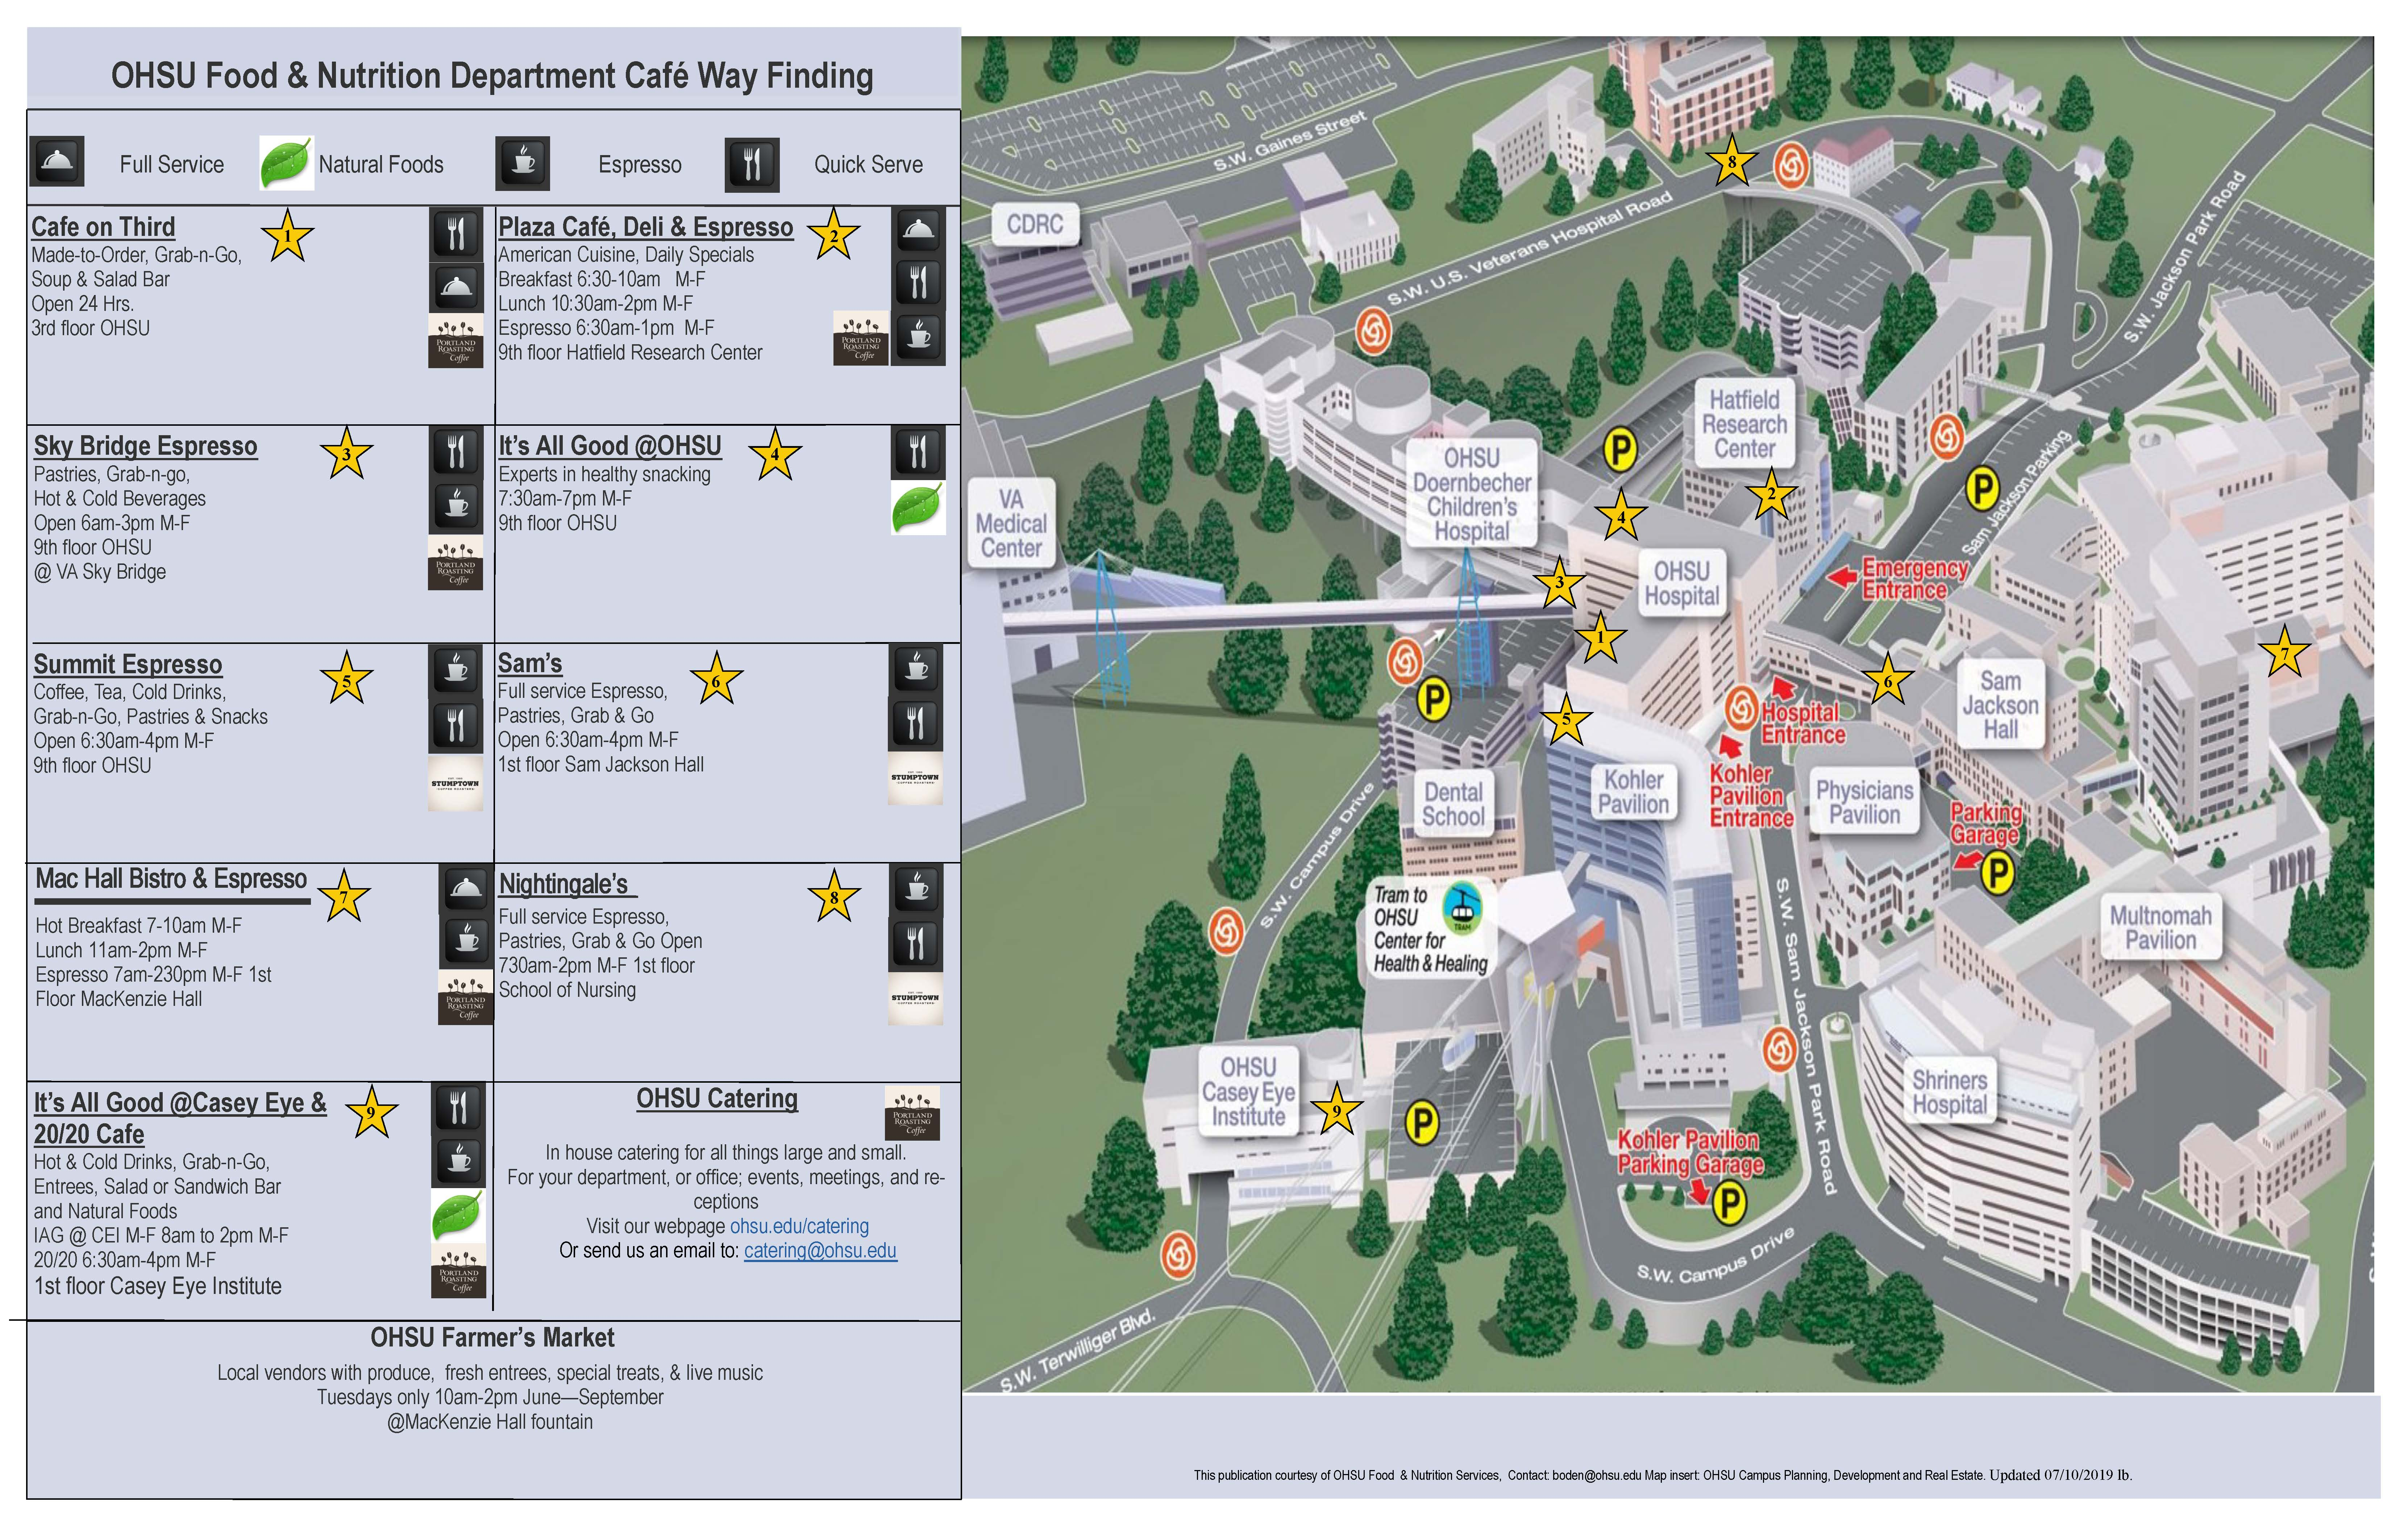 Way finidng map with food and nutrition locations at OHSU